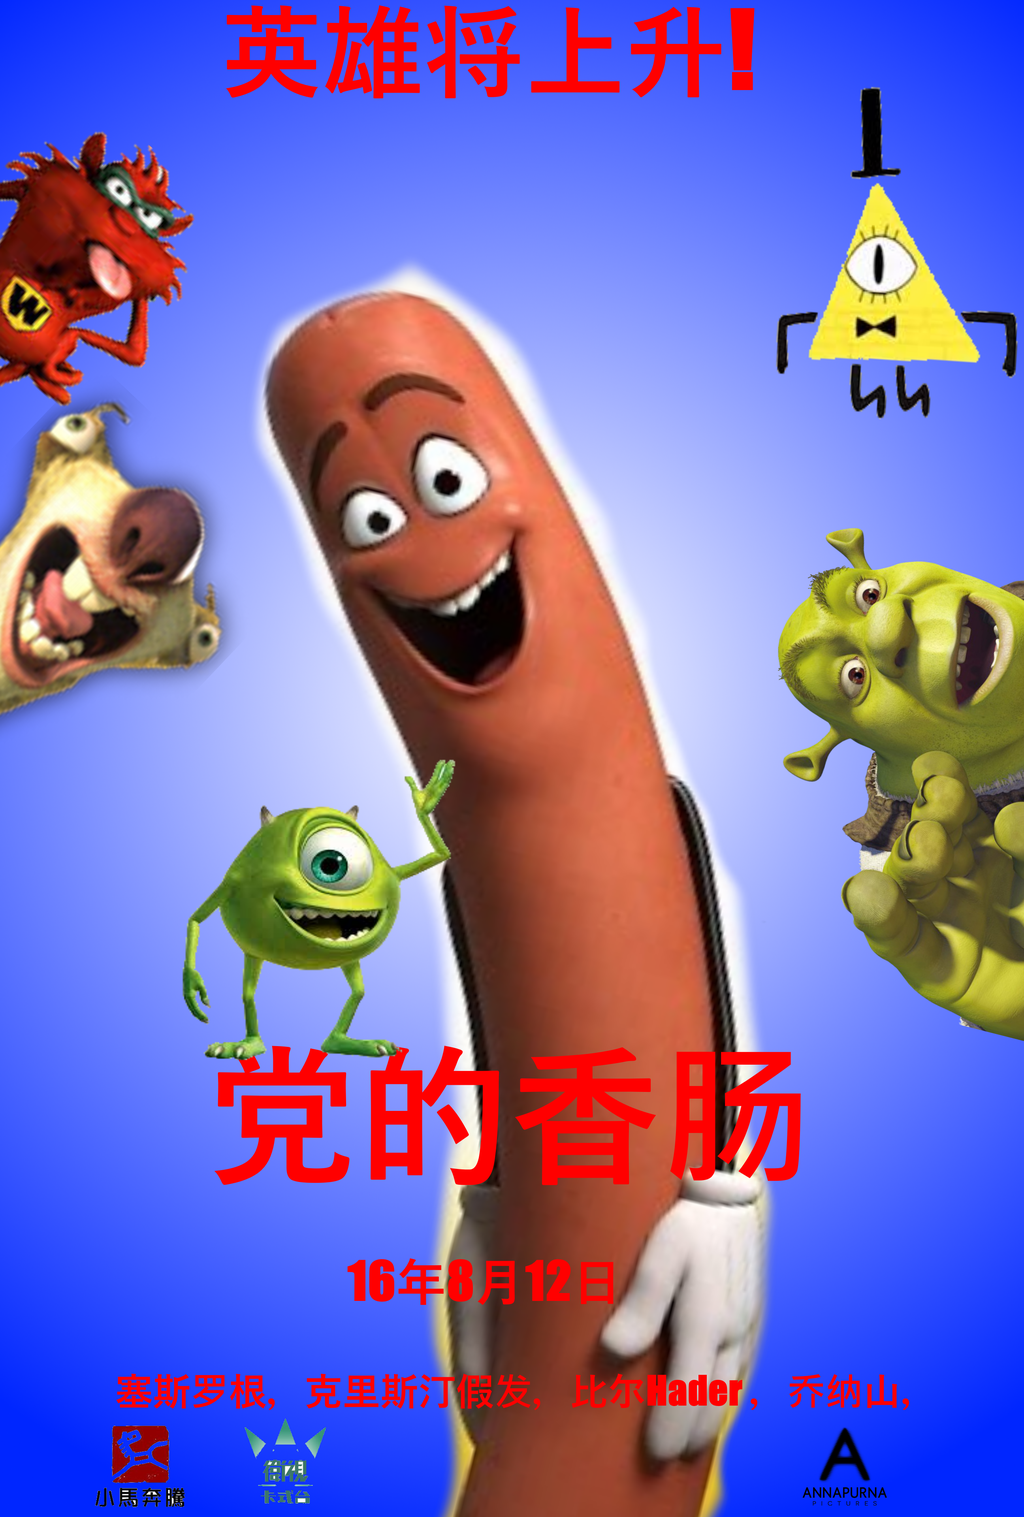 Chinese Sausage Party Bootleg Film by greshaminc on DeviantArt.